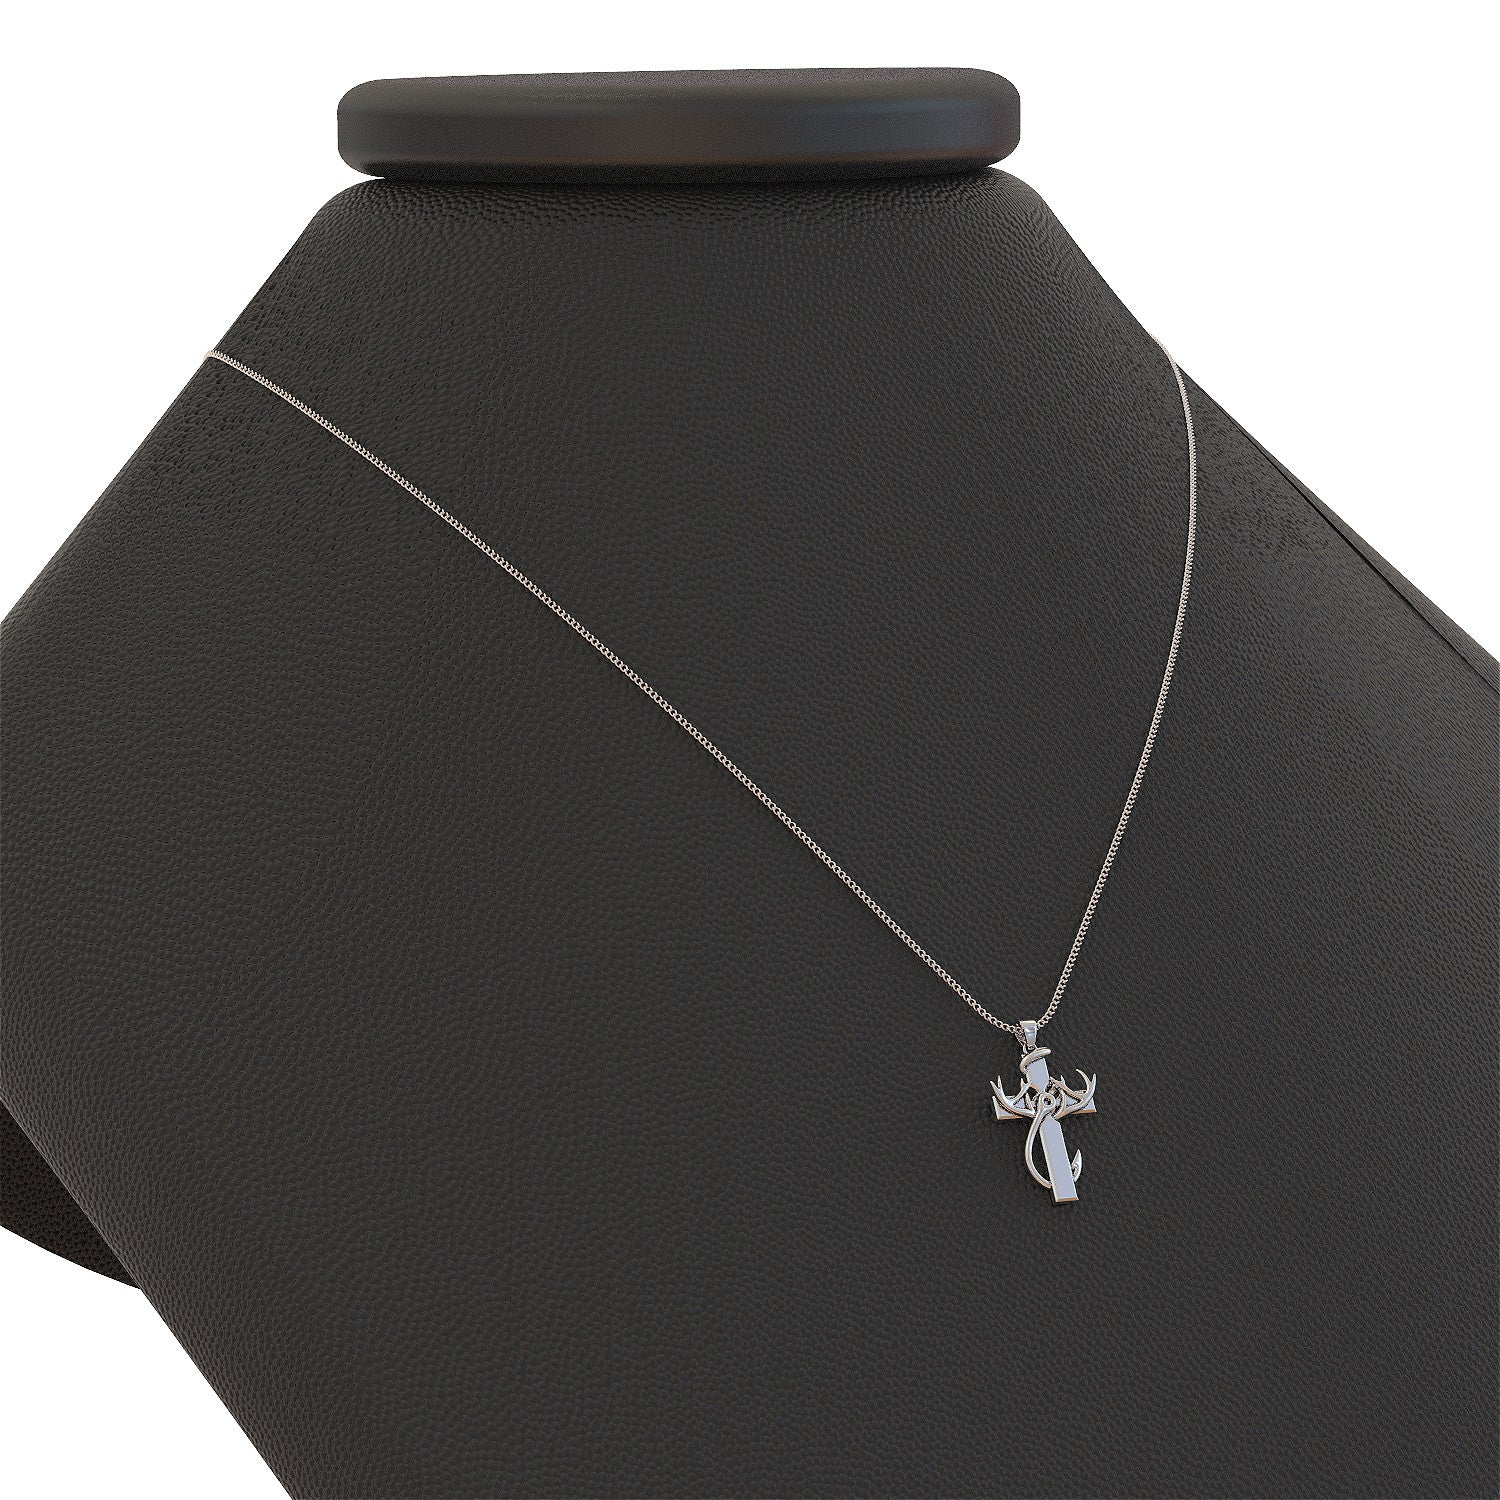 faith pendant shineon hunting dimensions products and necklace fishing cross